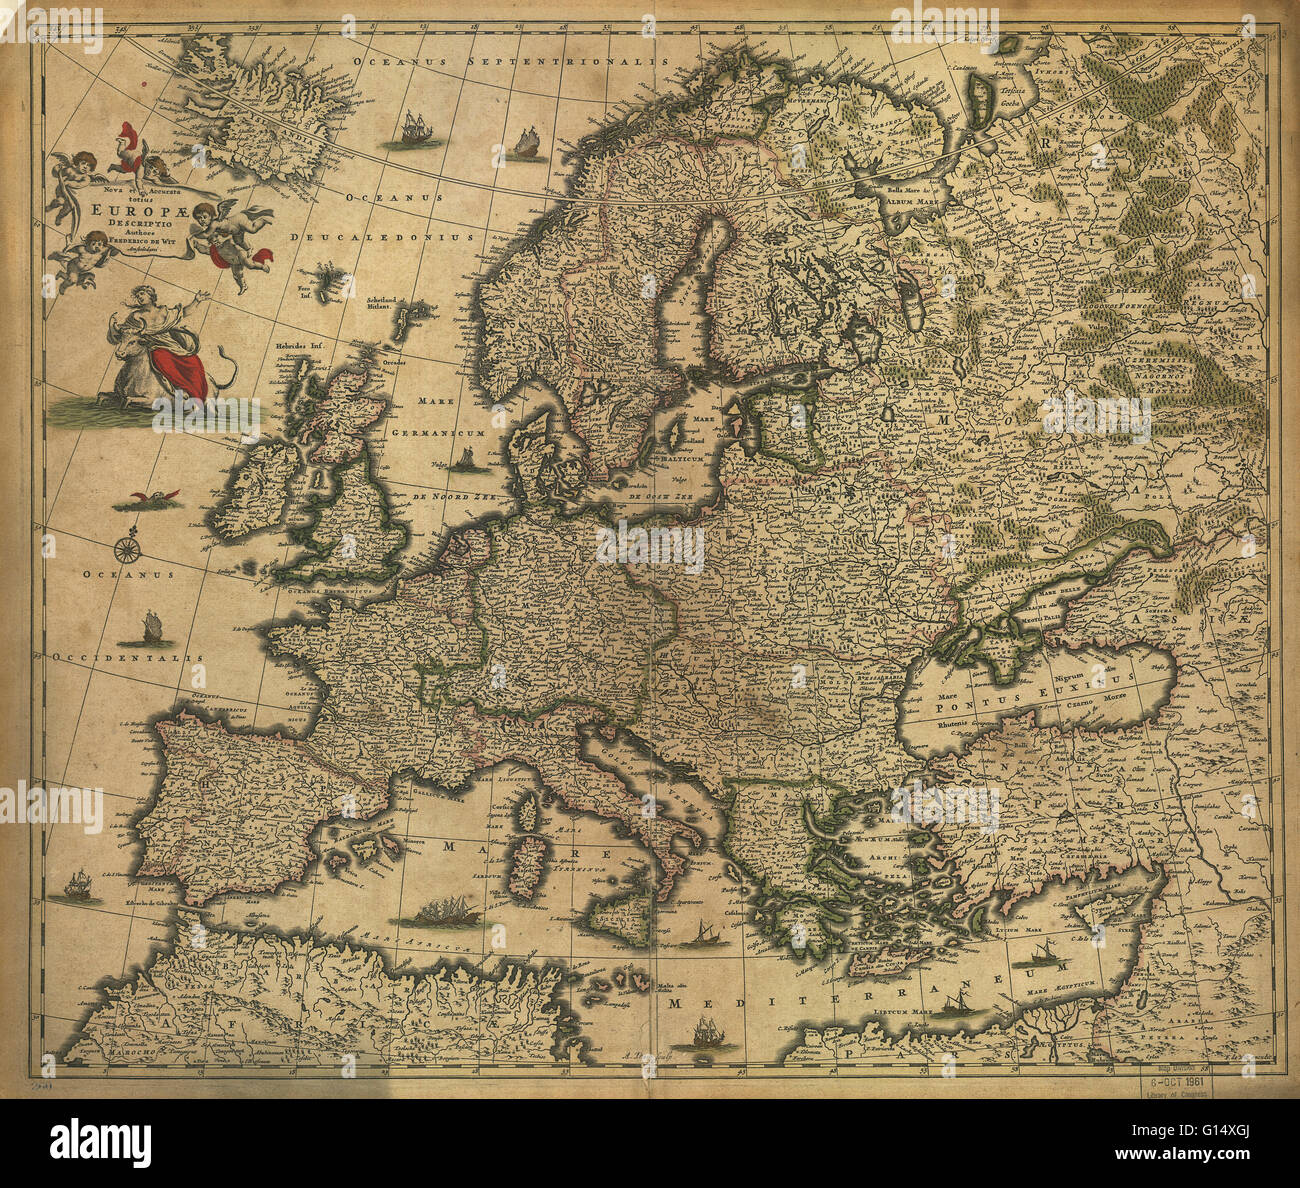 published in 1700 this map by the dutch cartographer frederick de witt 1630 1706 shows the latest knowledge of the geography of europe